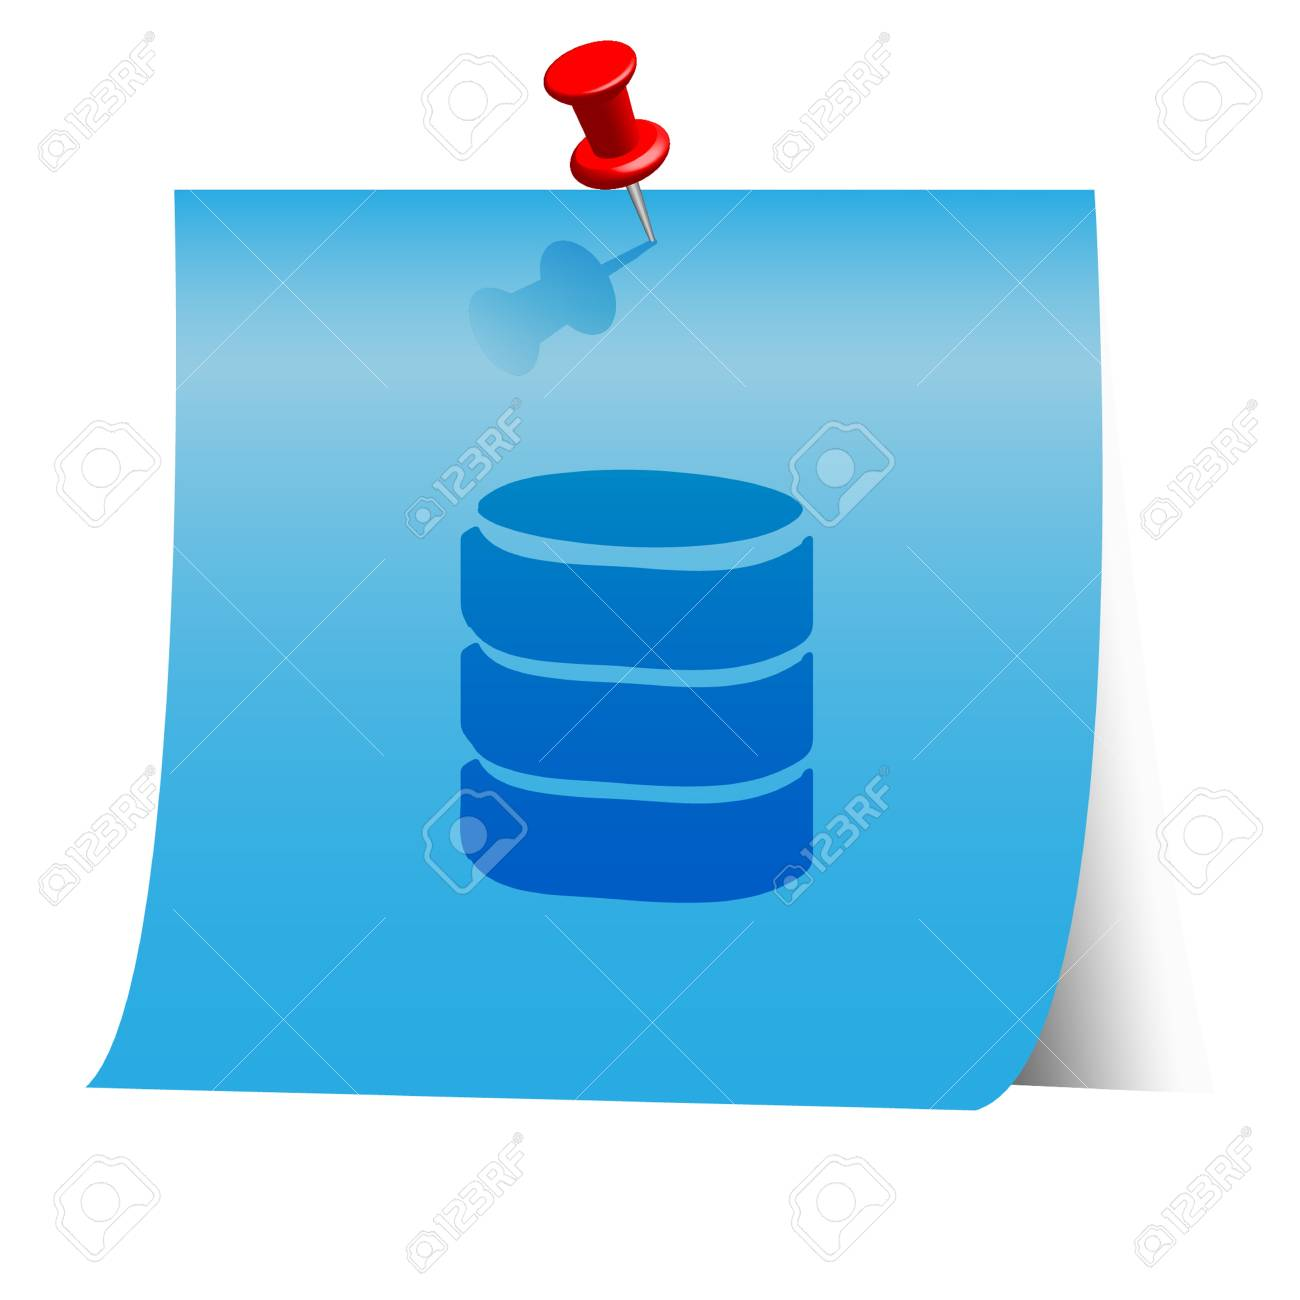 Energy resource icon on blue paper note. Stock Vector - 18139941